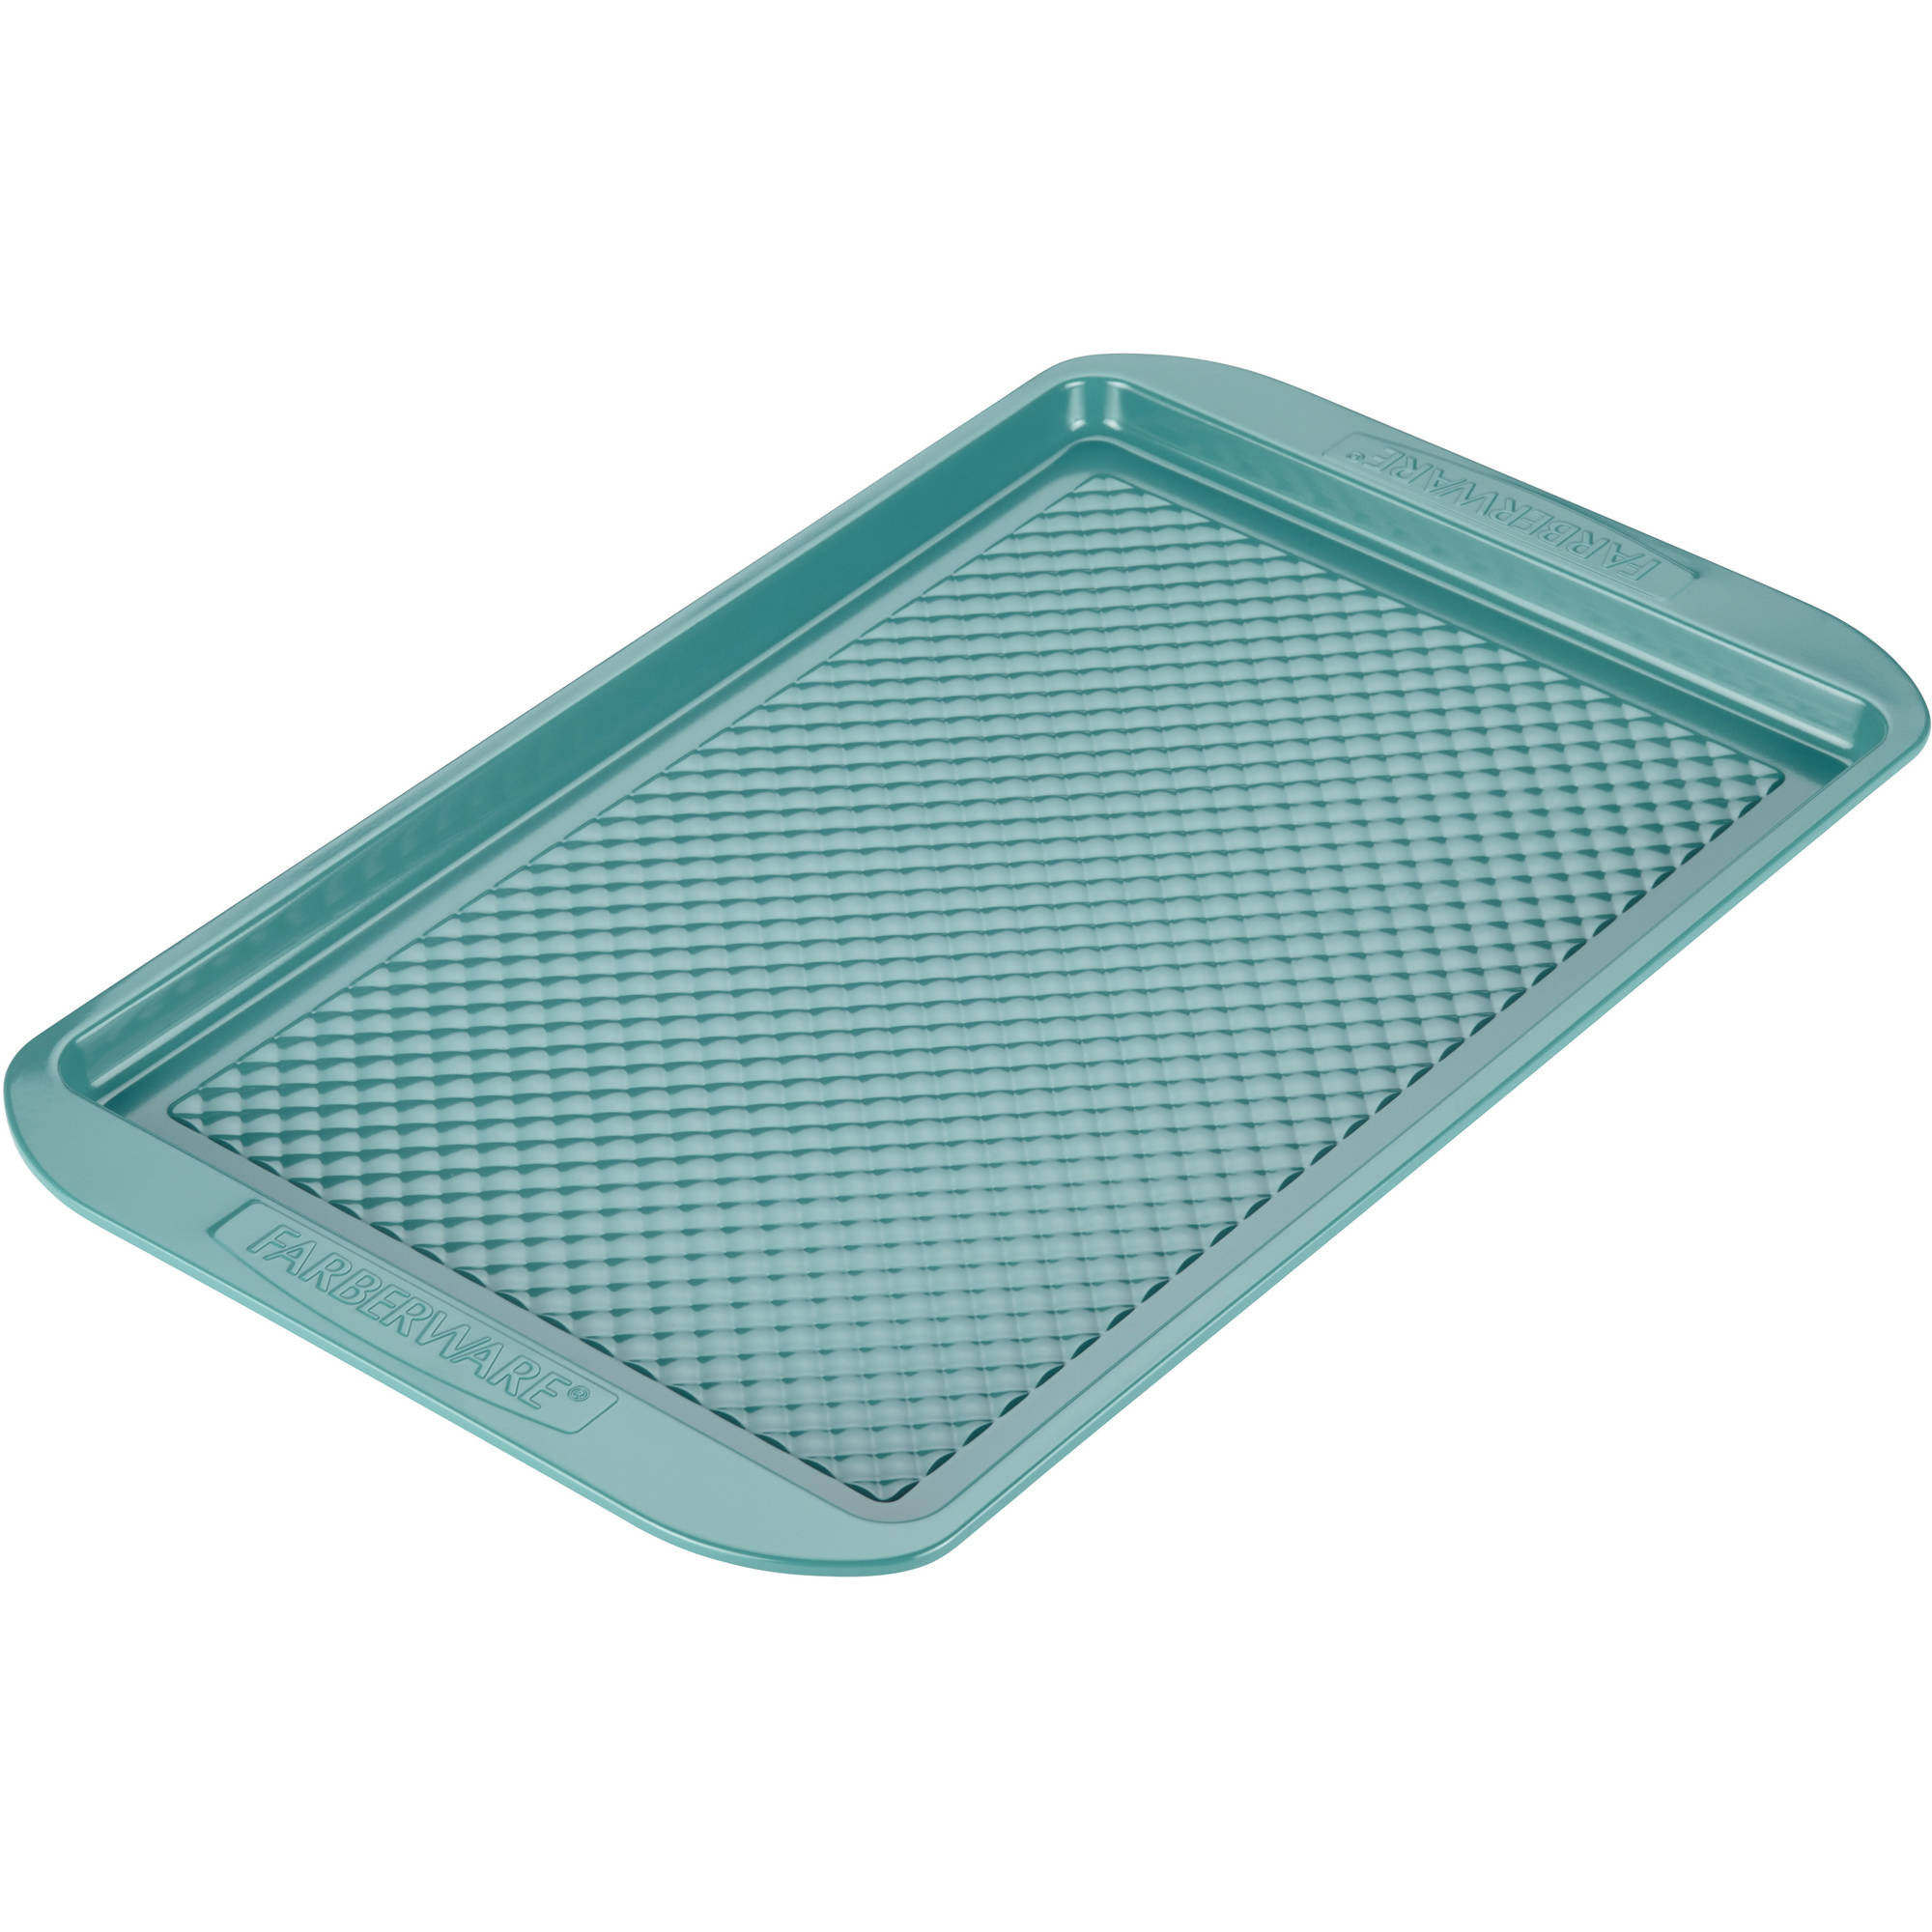 "Farberware purECOok Hybrid Ceramic Nonstick Bakeware Baking Sheet and Cookie Pan, 11"" x 17"", Lavender"